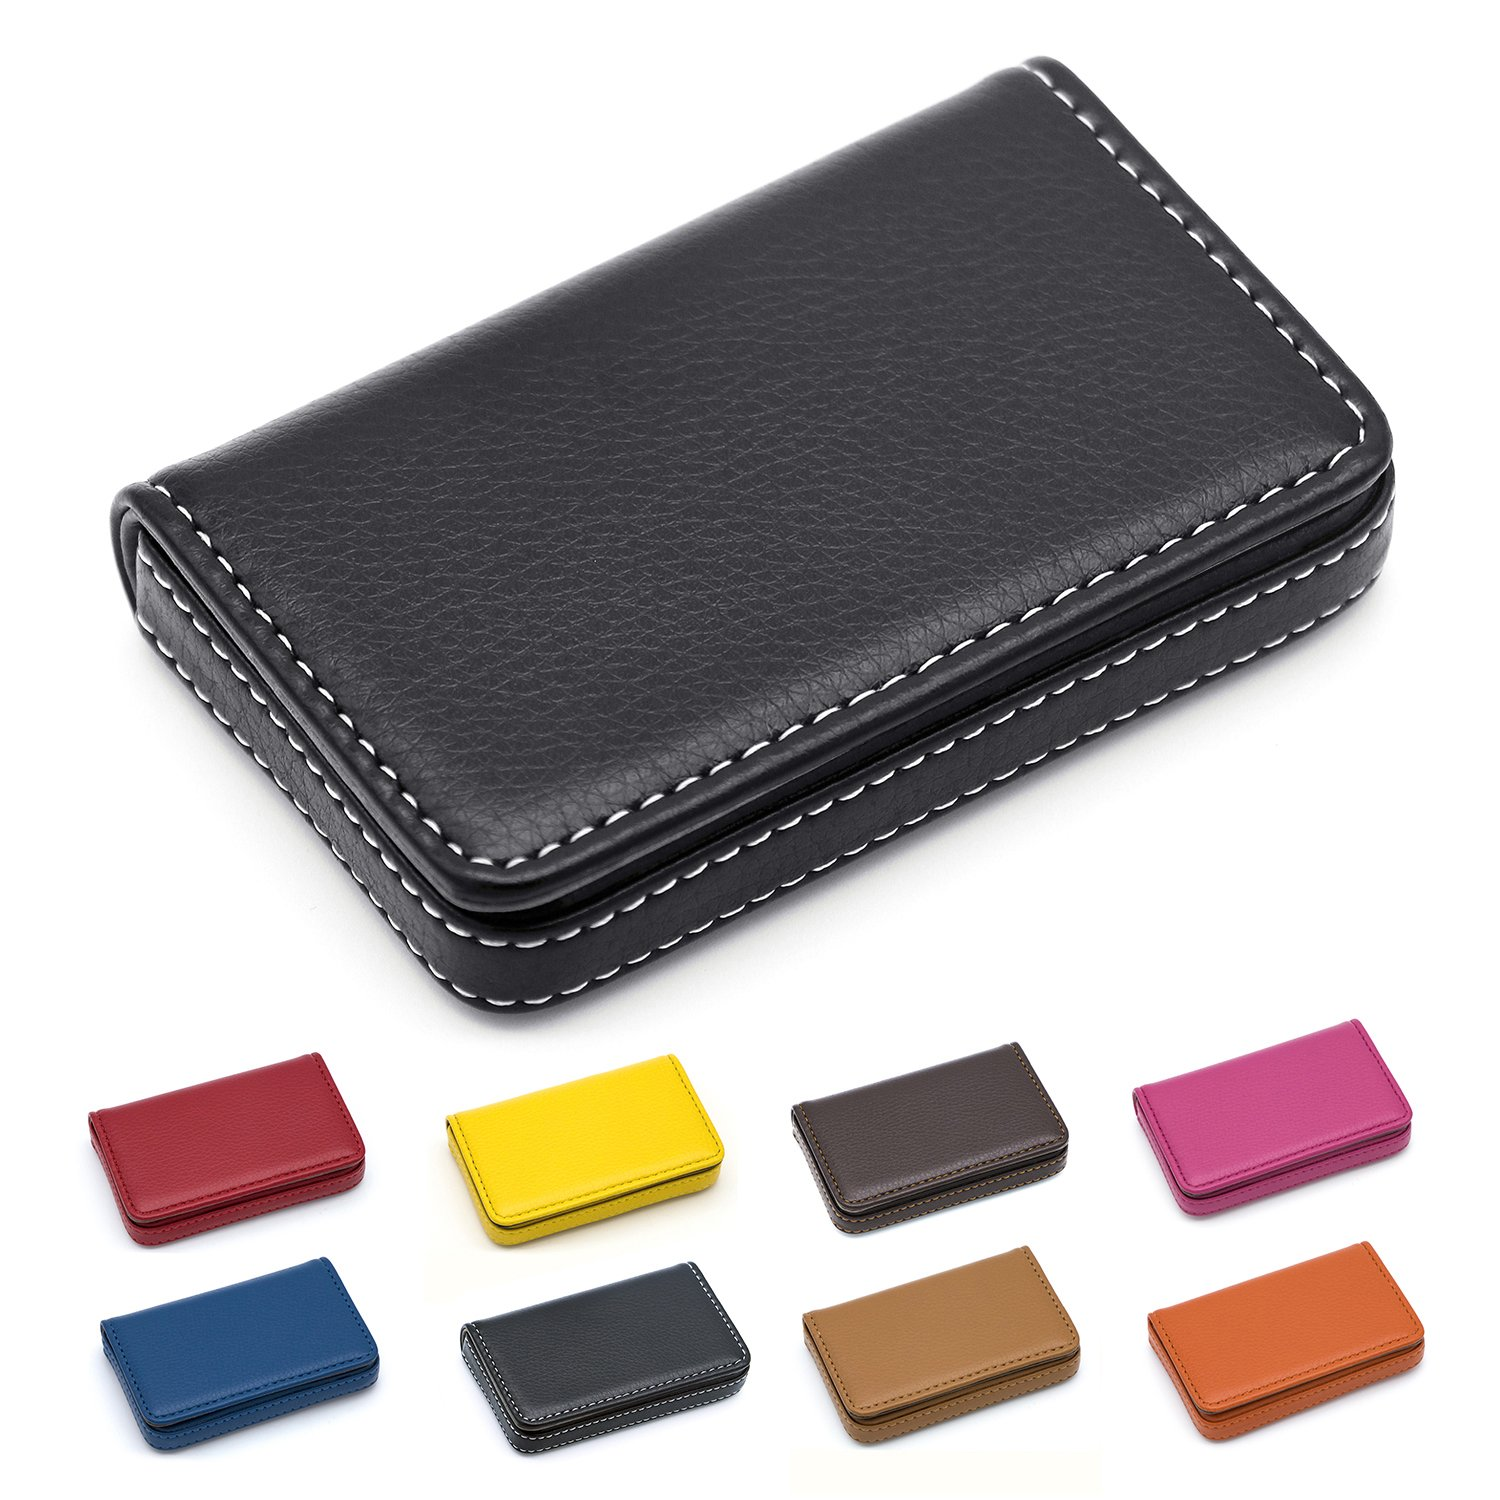 cde13af723dc1 Amazon.com  Padike Business Name Card Holder Luxury PU Leather ...